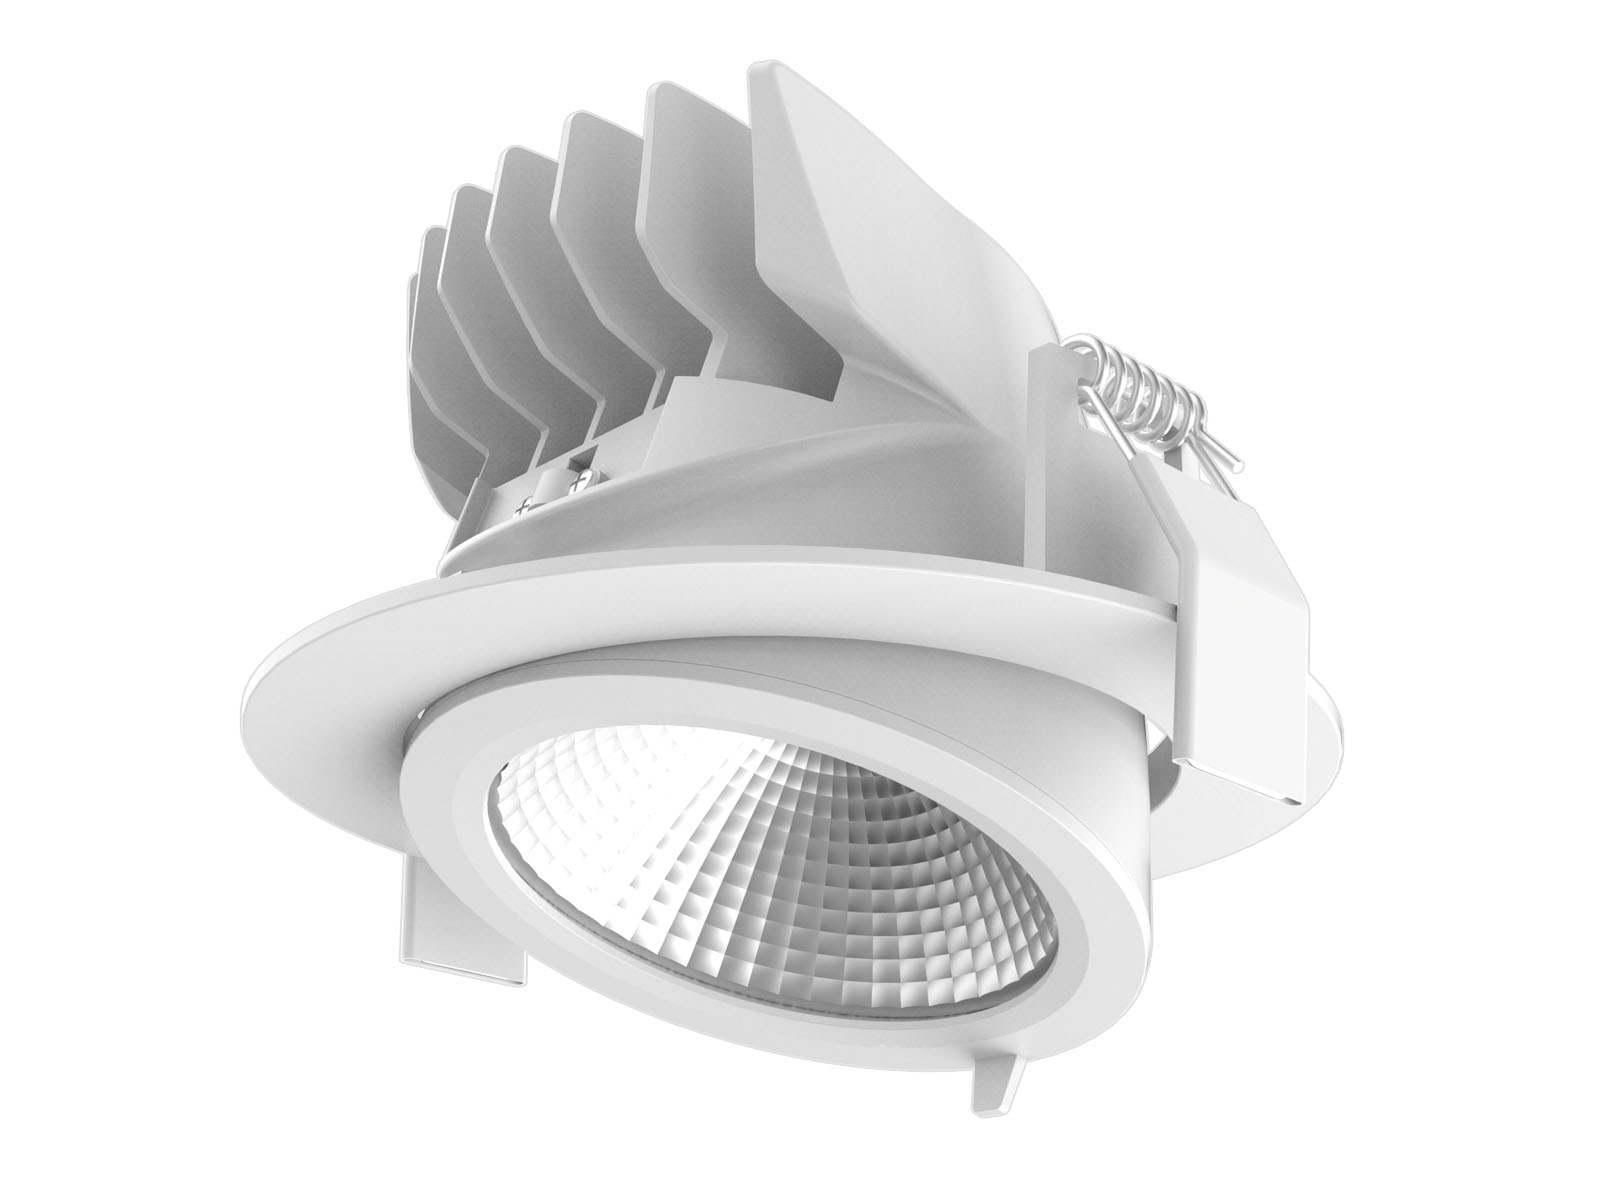 DL31 1 Recessed Led Down Light